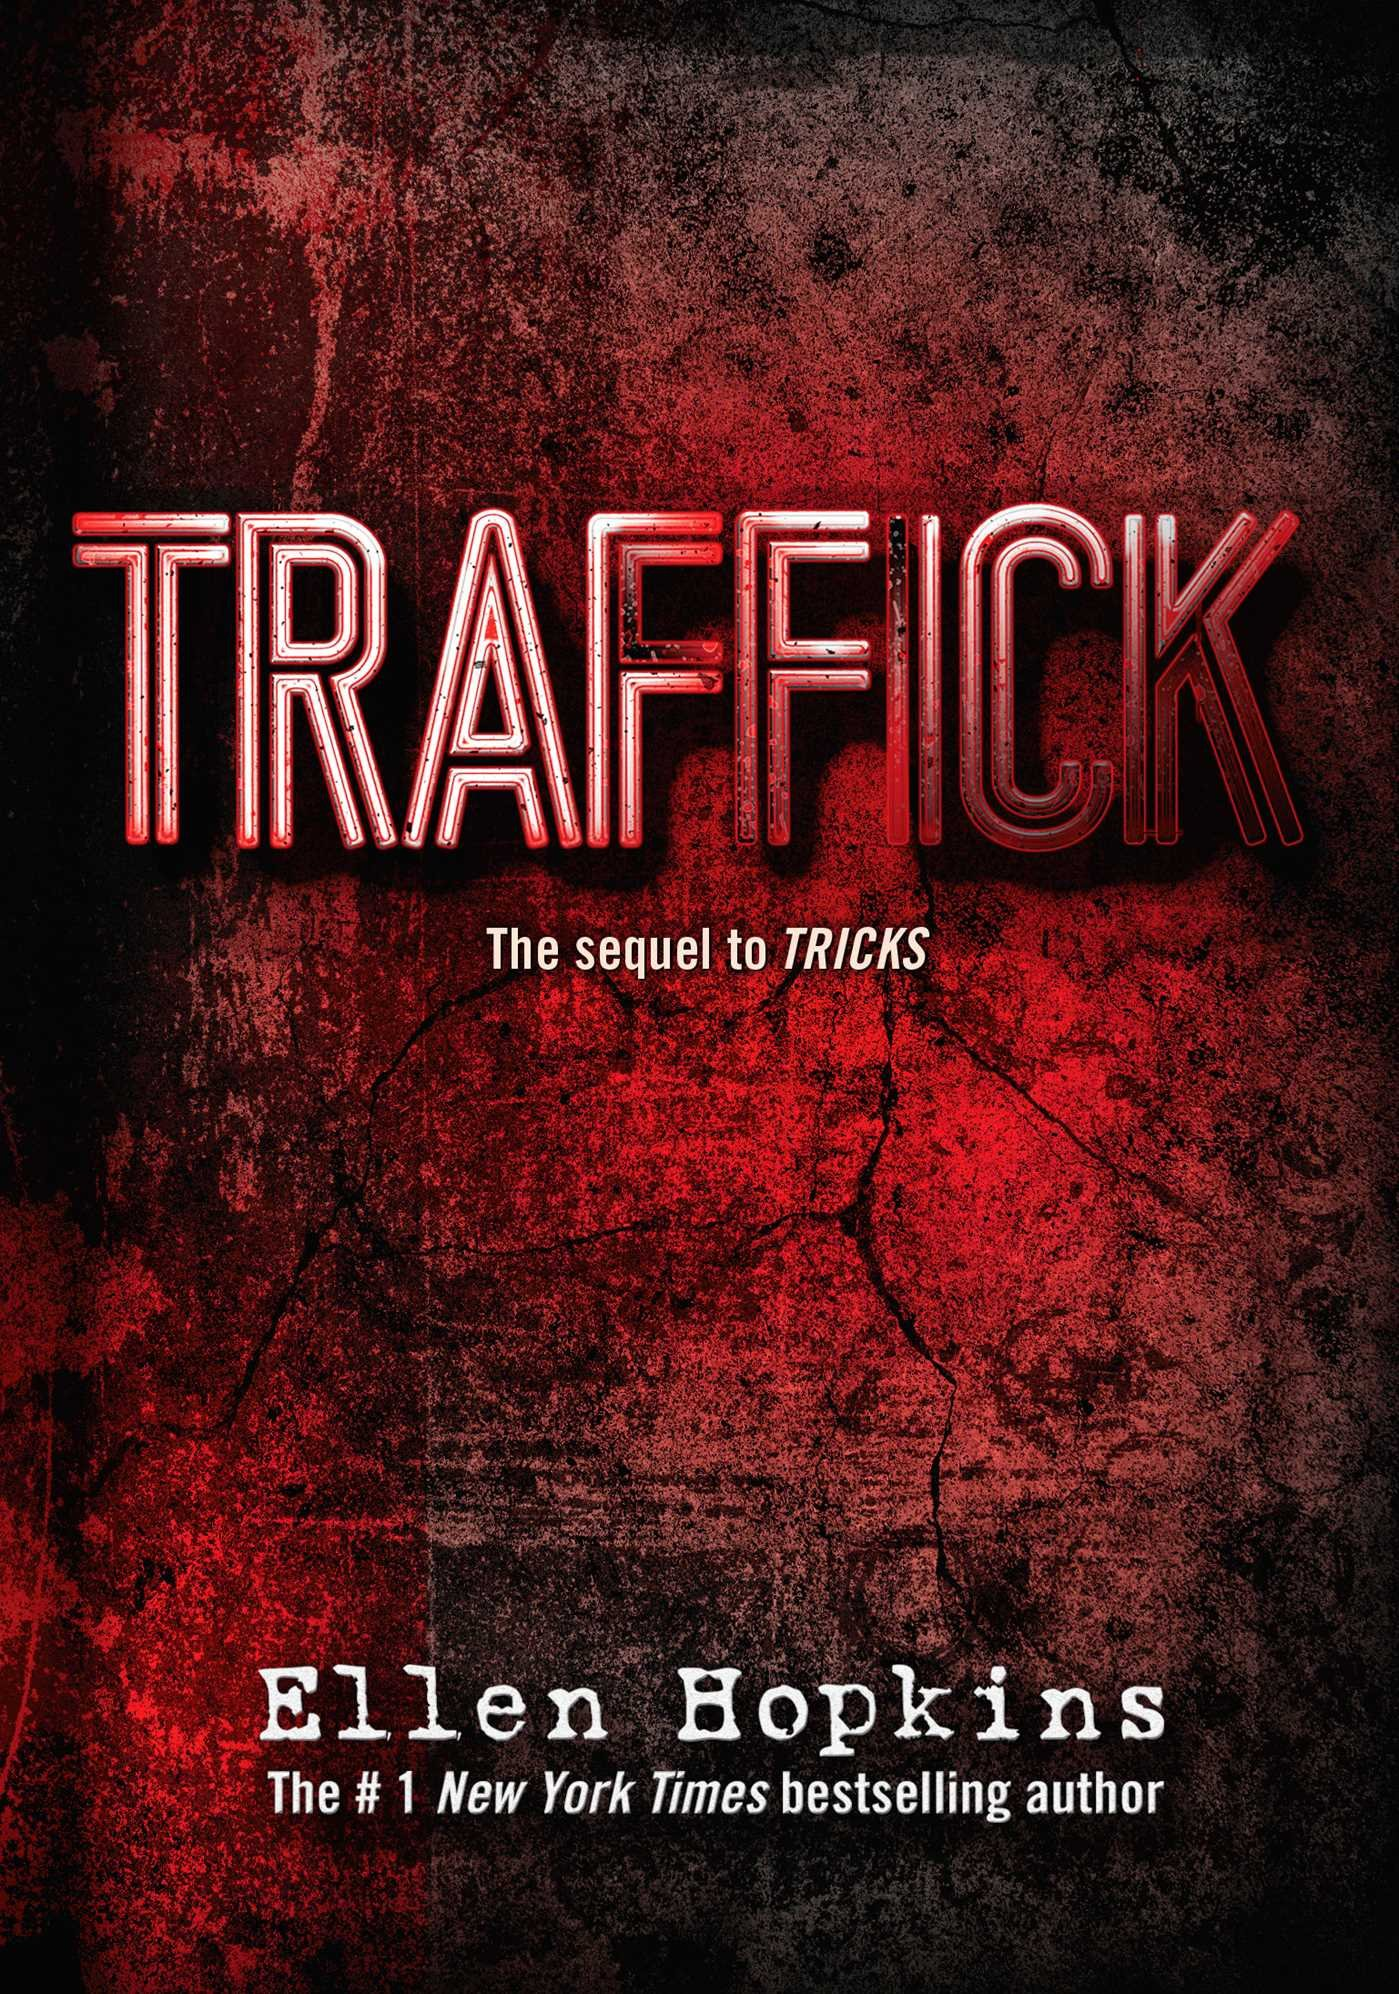 Tricks-traffick by book edition gold issuu.